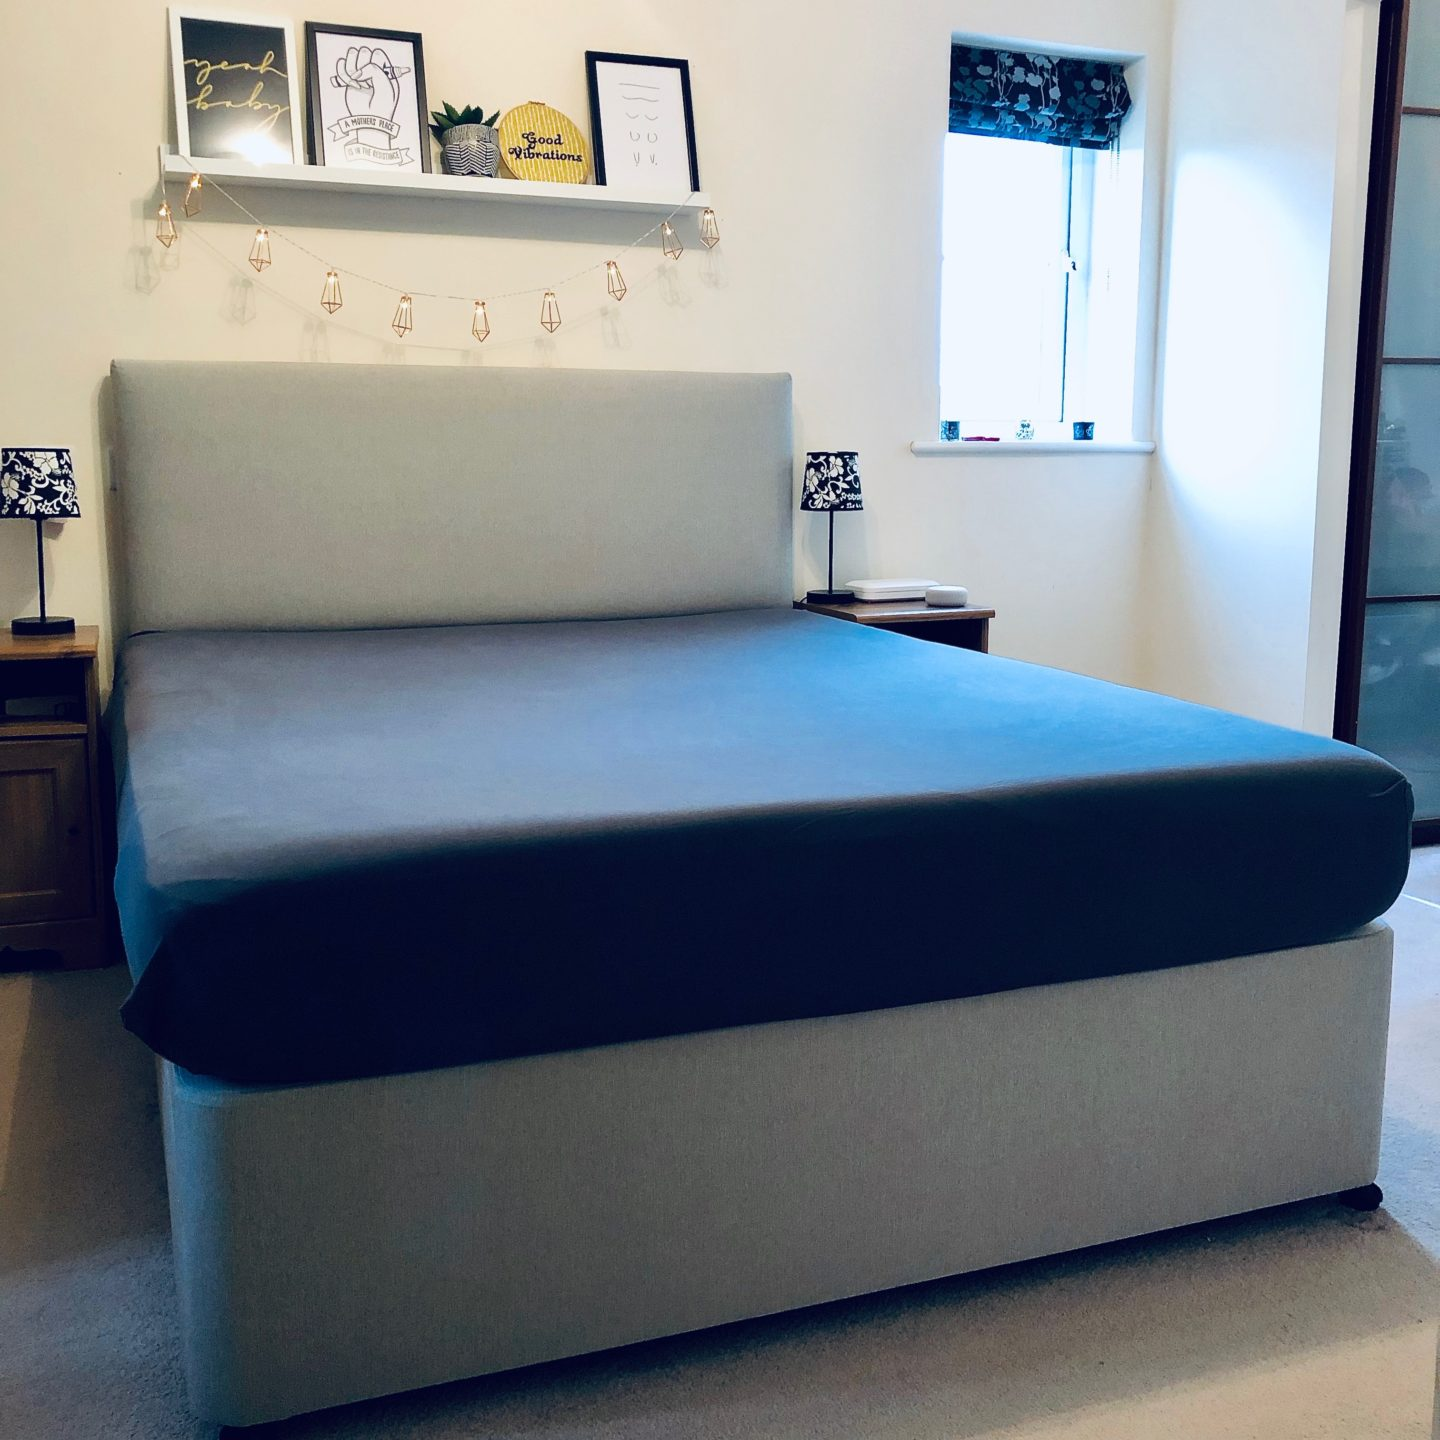 The Emma Mattress with a grey fitted sheet applied. The mattress looks wide and deep.